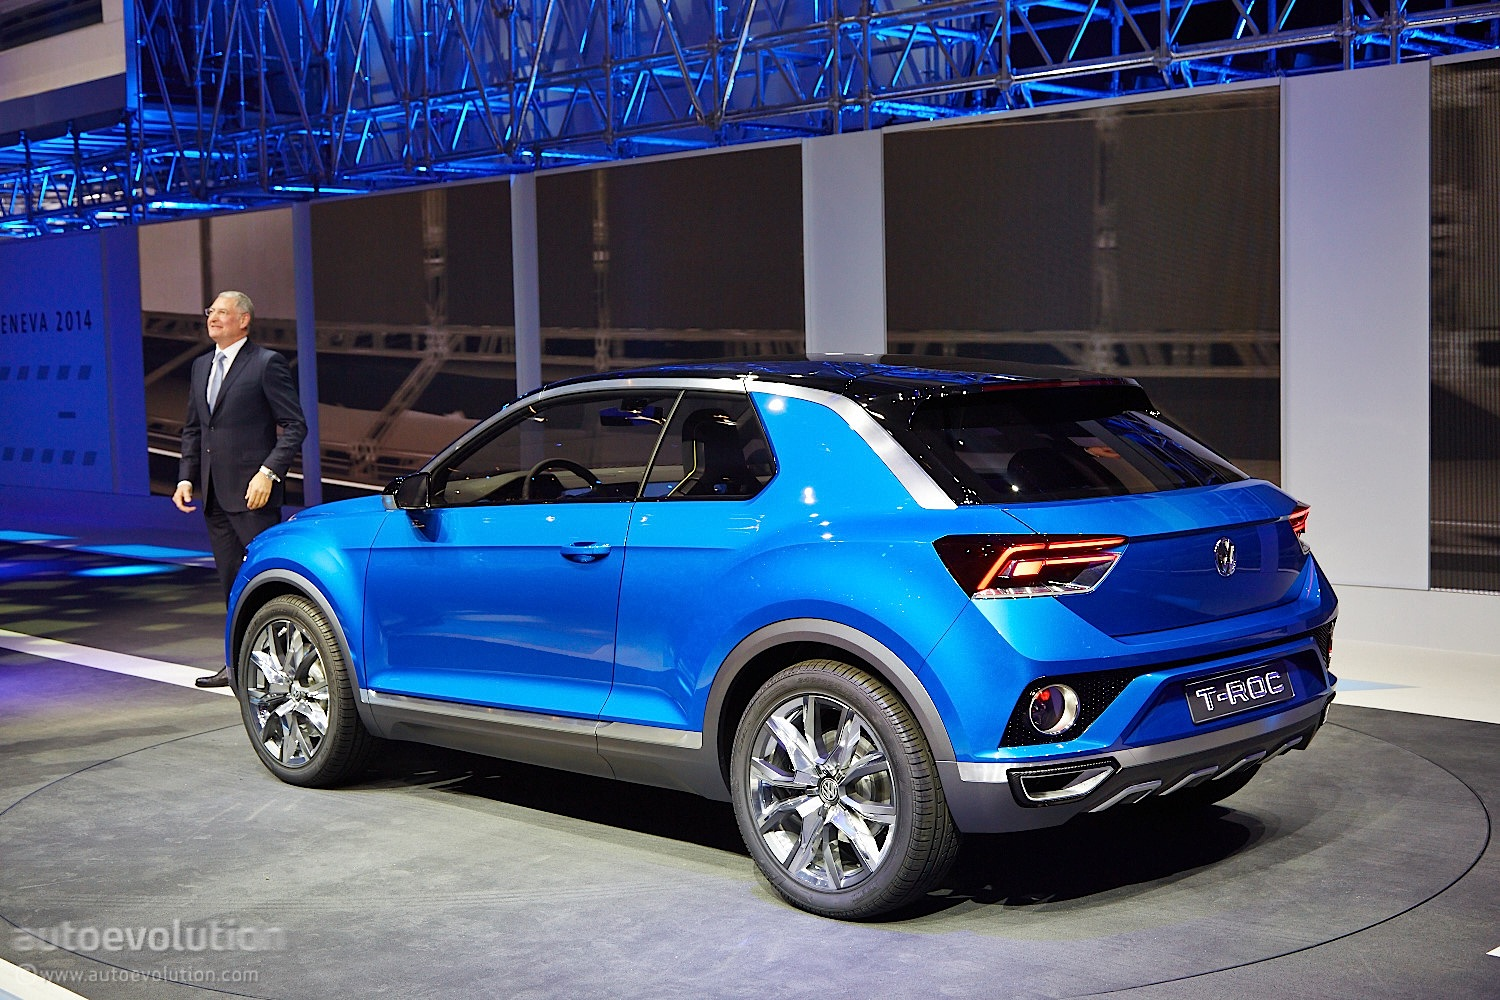 2018 Volkswagen T Roc Teaser Shows Production Spec Design Mules 2015 Nissan Versa Wiring Harness Concept